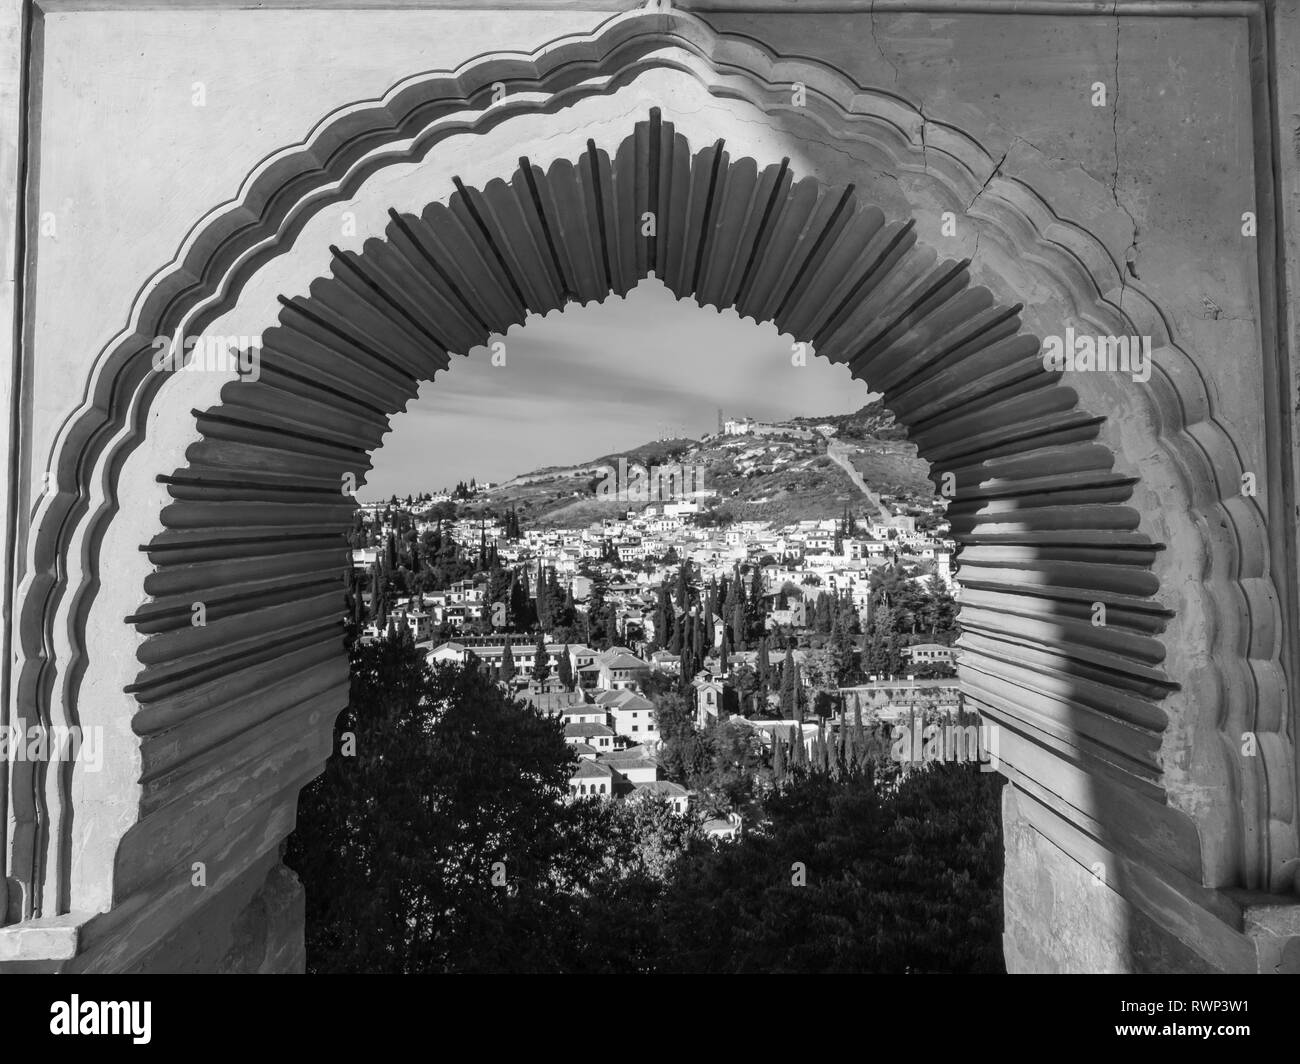 View of the town of Ubeda through a decorative archway; Ubeda, Jaen Province, Spain - Stock Image